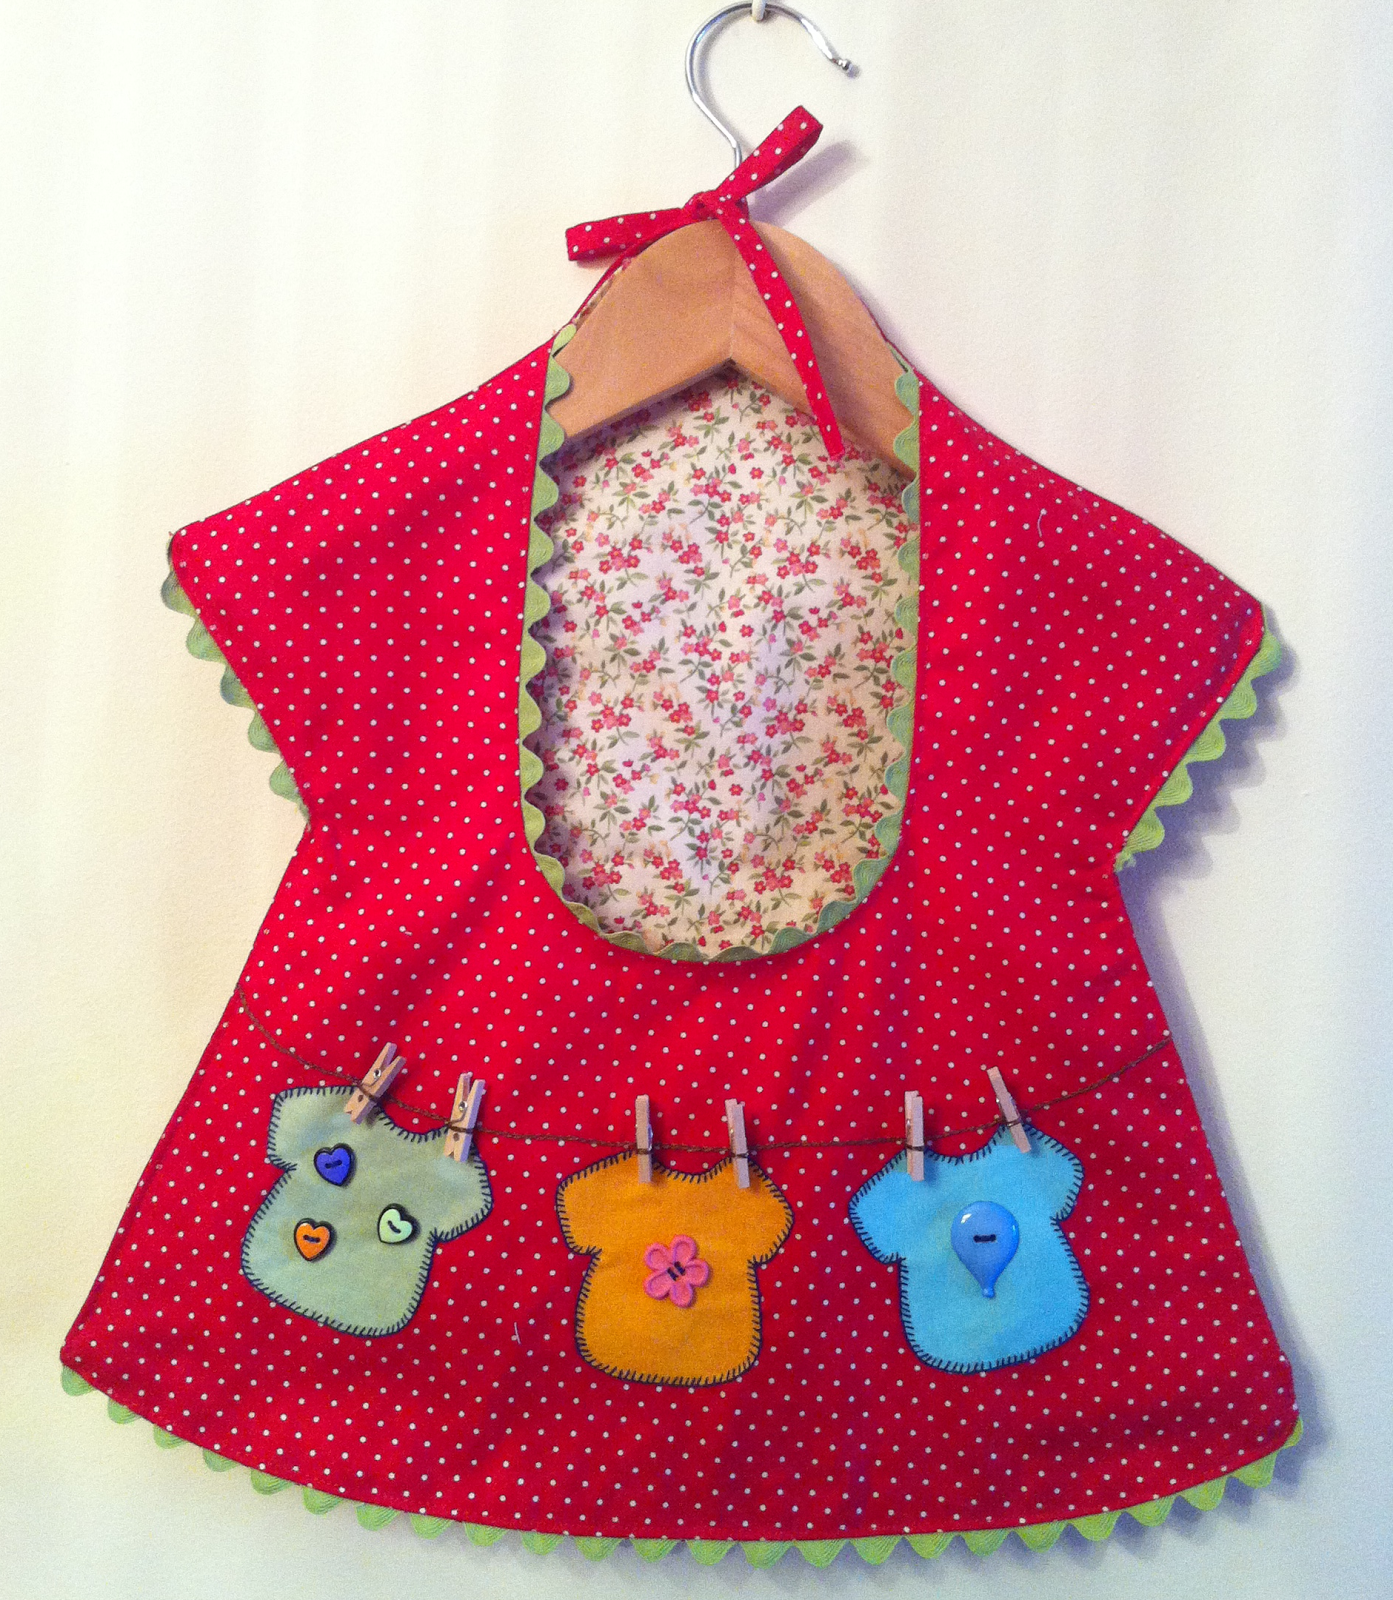 Patchwork Bolsa Pinzas Tender Bag Ideas For Future Projects